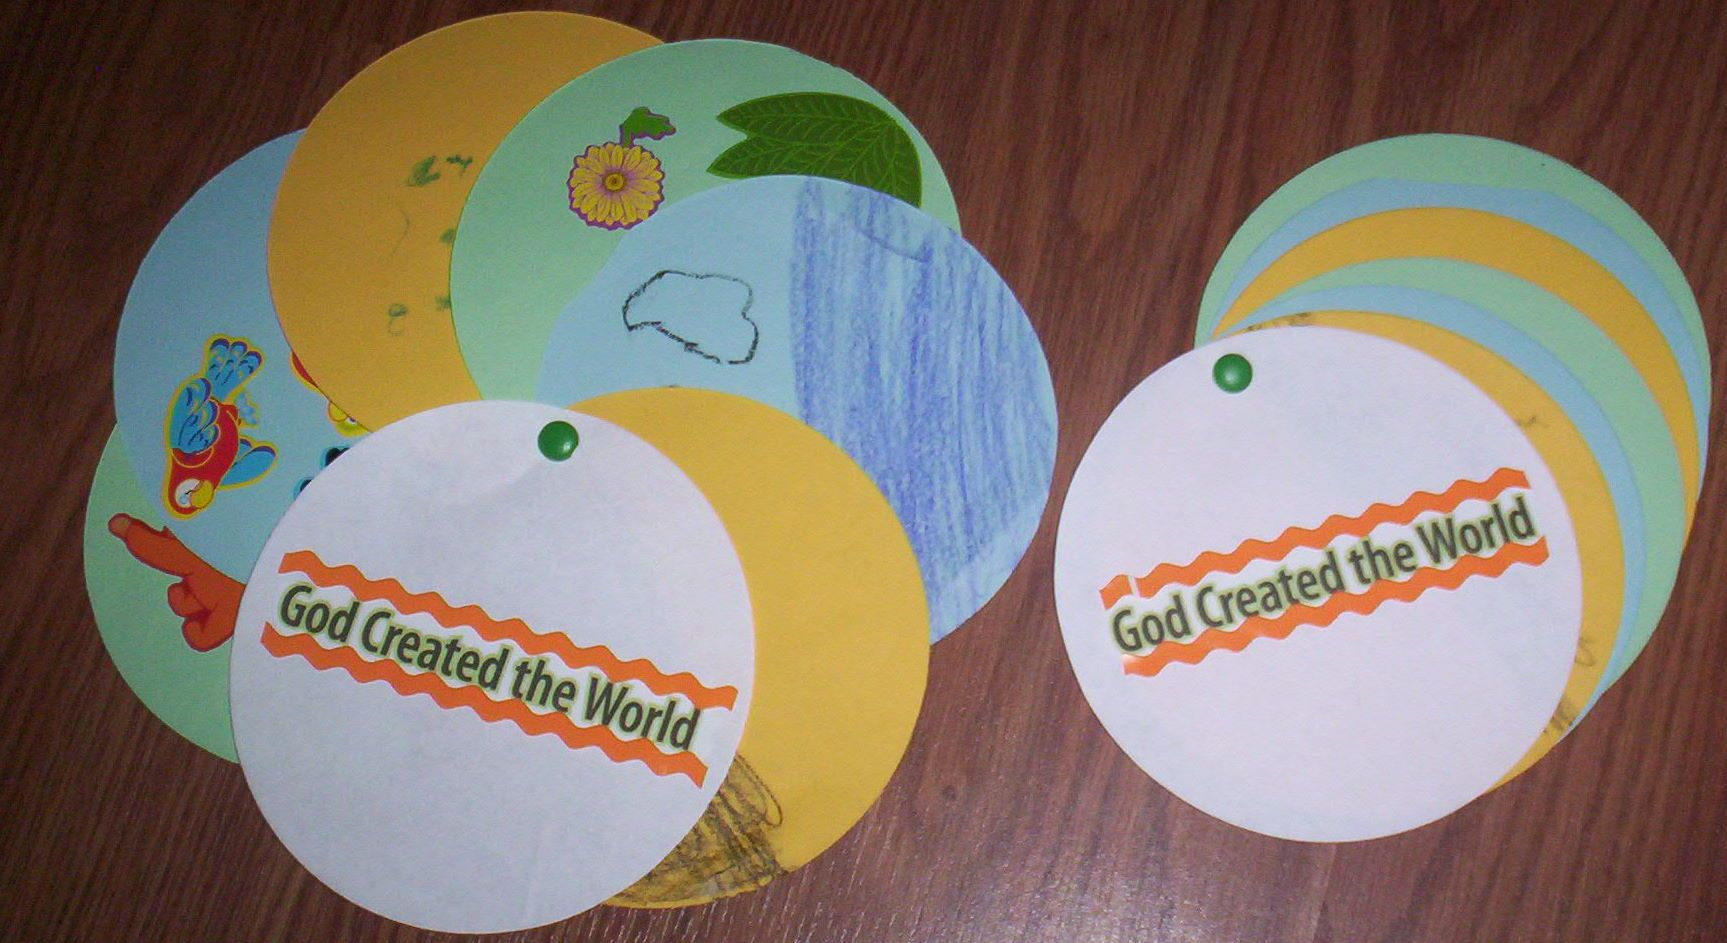 Pin by emily bittenbender on ministry ideas pinterest for Creation crafts for sunday school